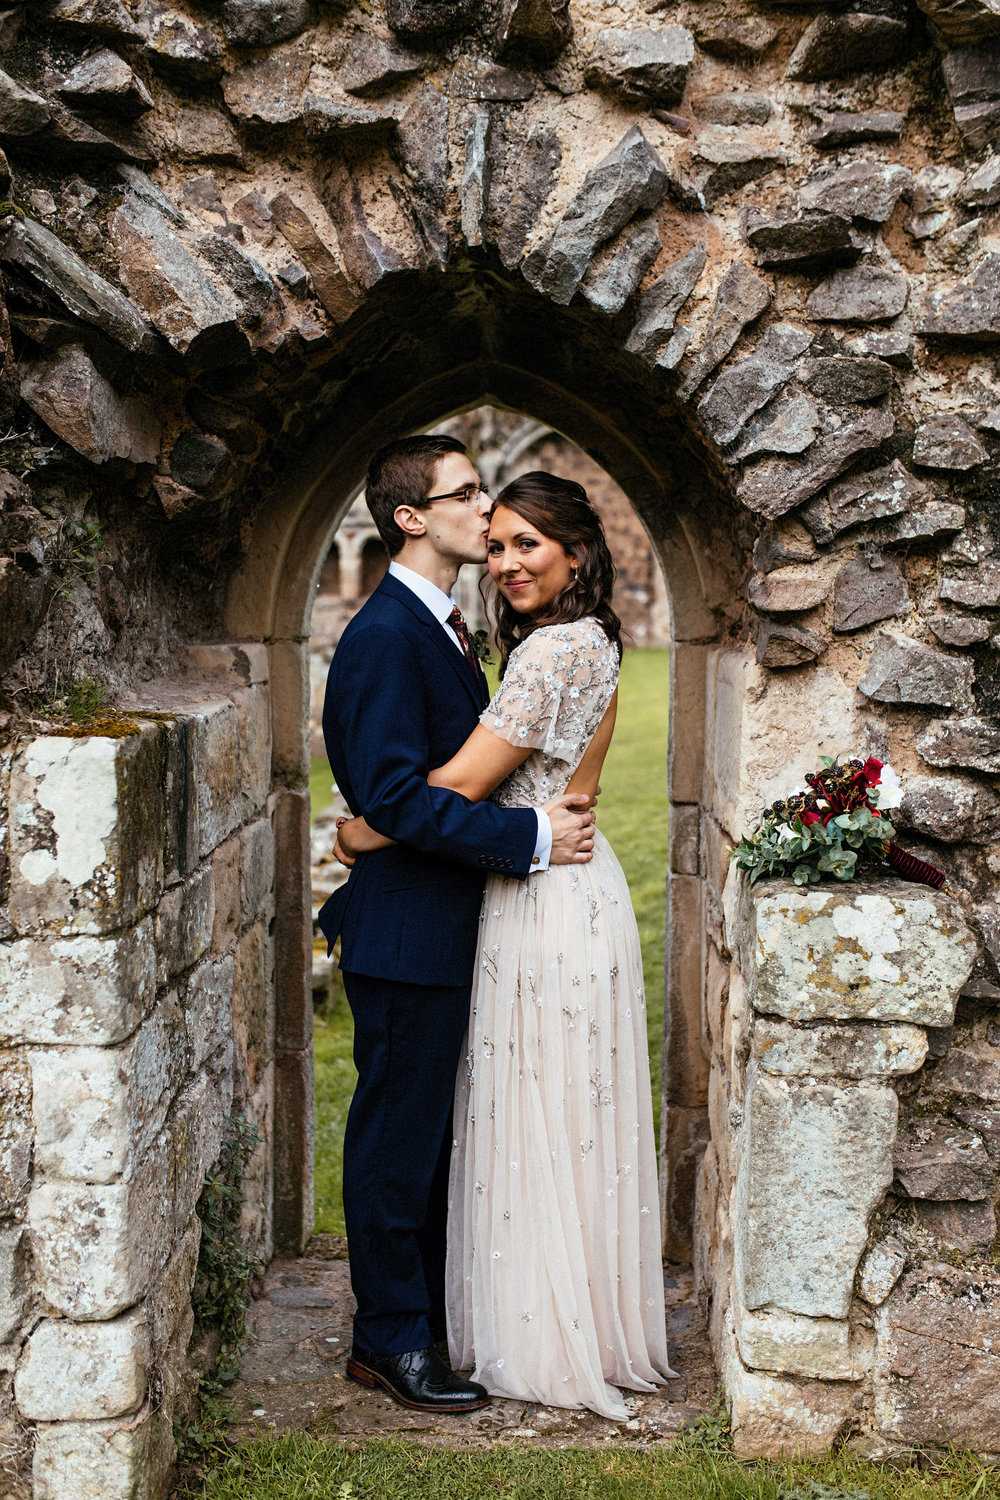 rowton-castle-wedding-photography-17-1.jpg